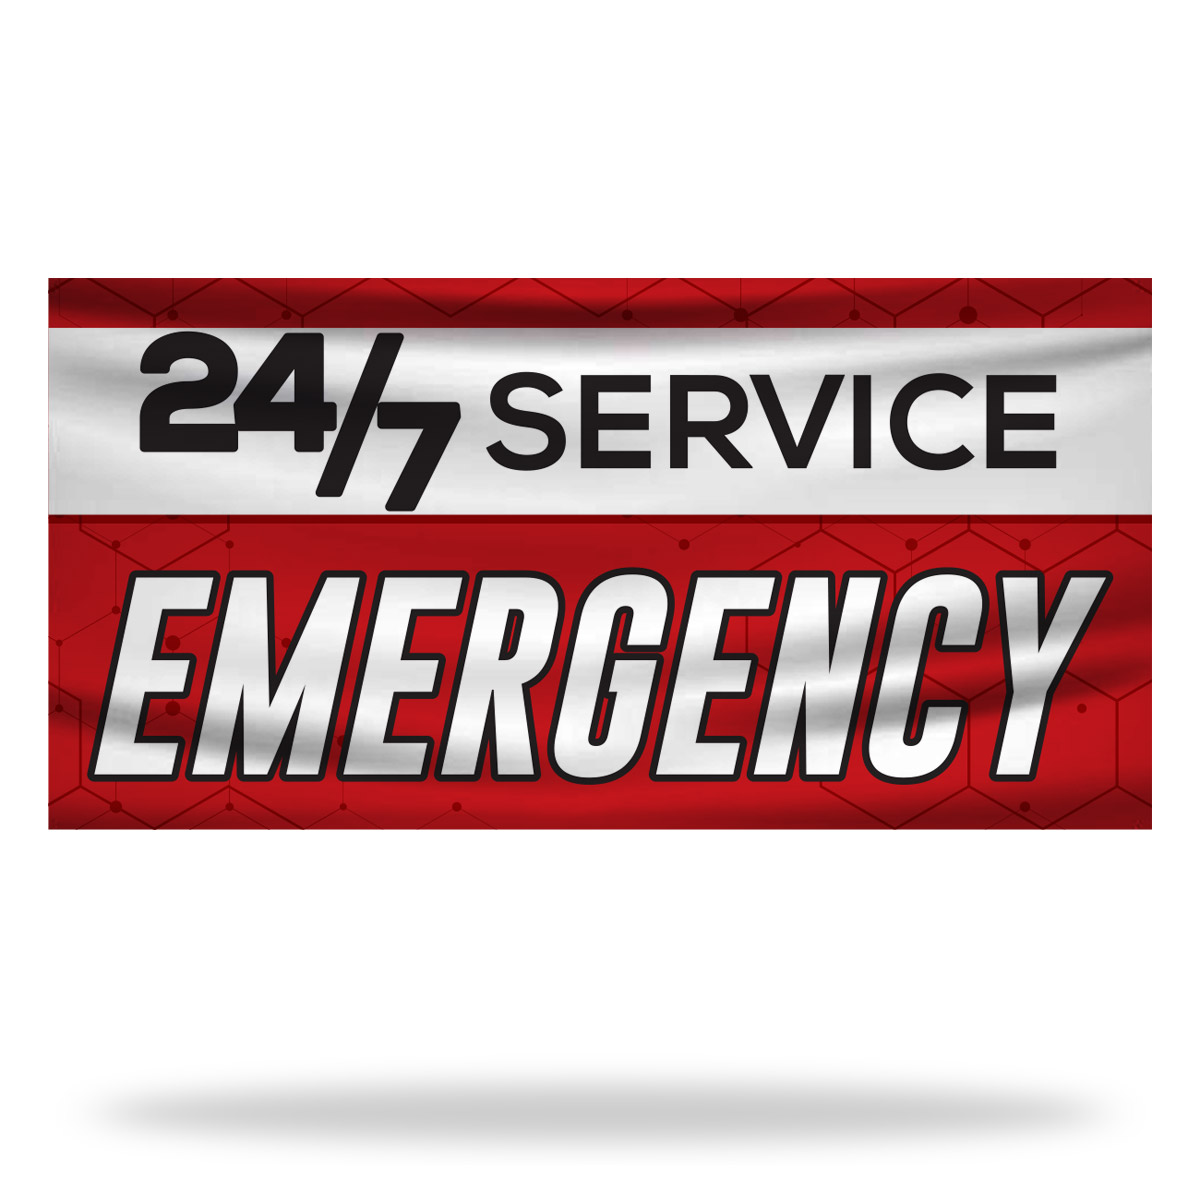 Medical Emergency Flags & Banners Design 02